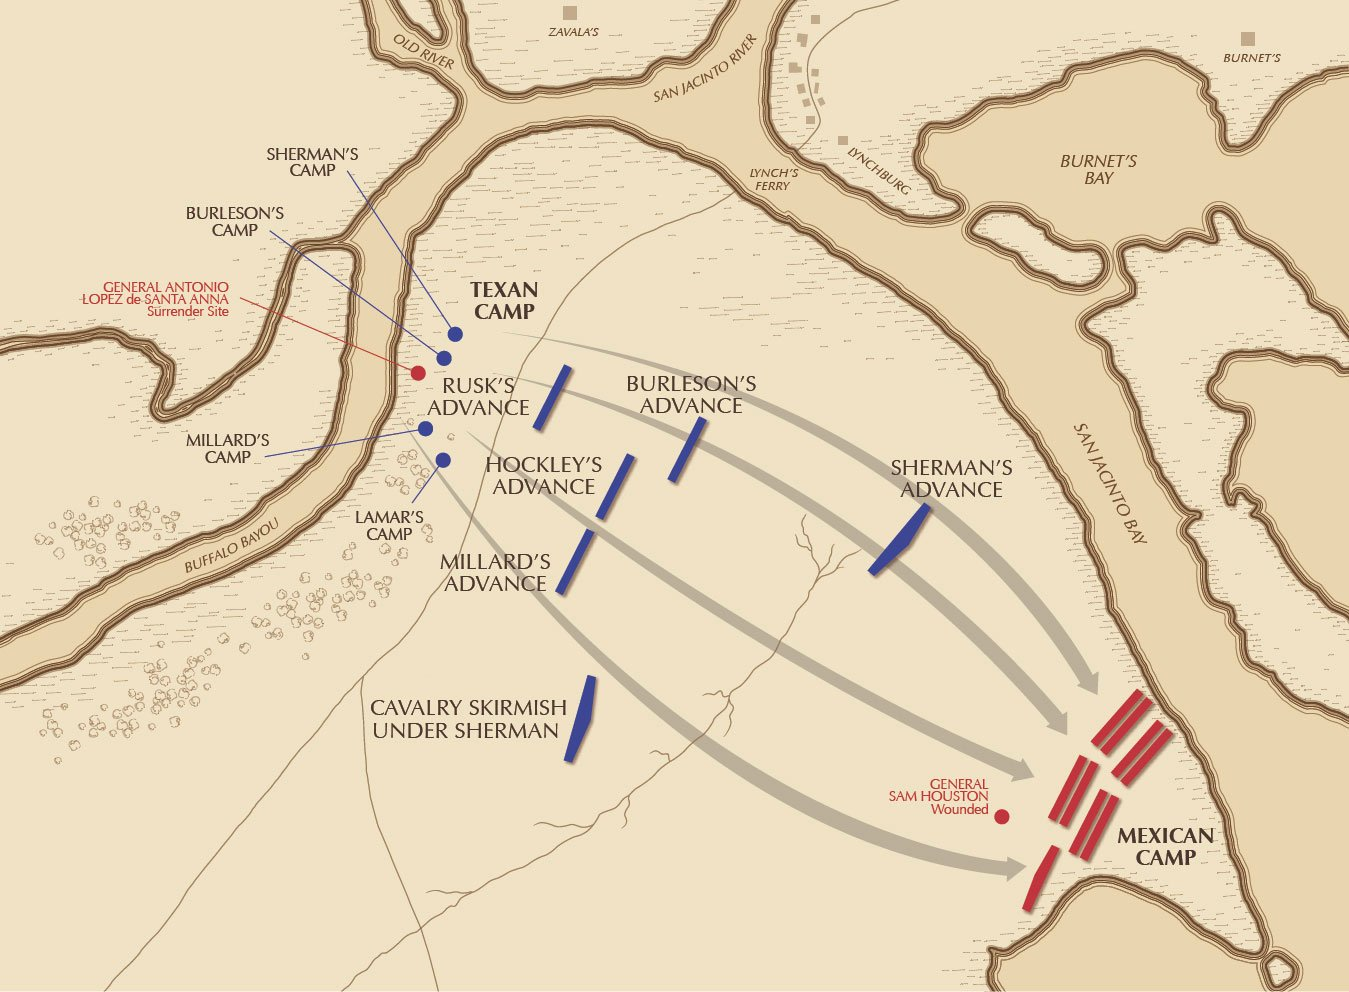 Map of the Battle of San Jacinto provided by the San Jacinto Museum.6 